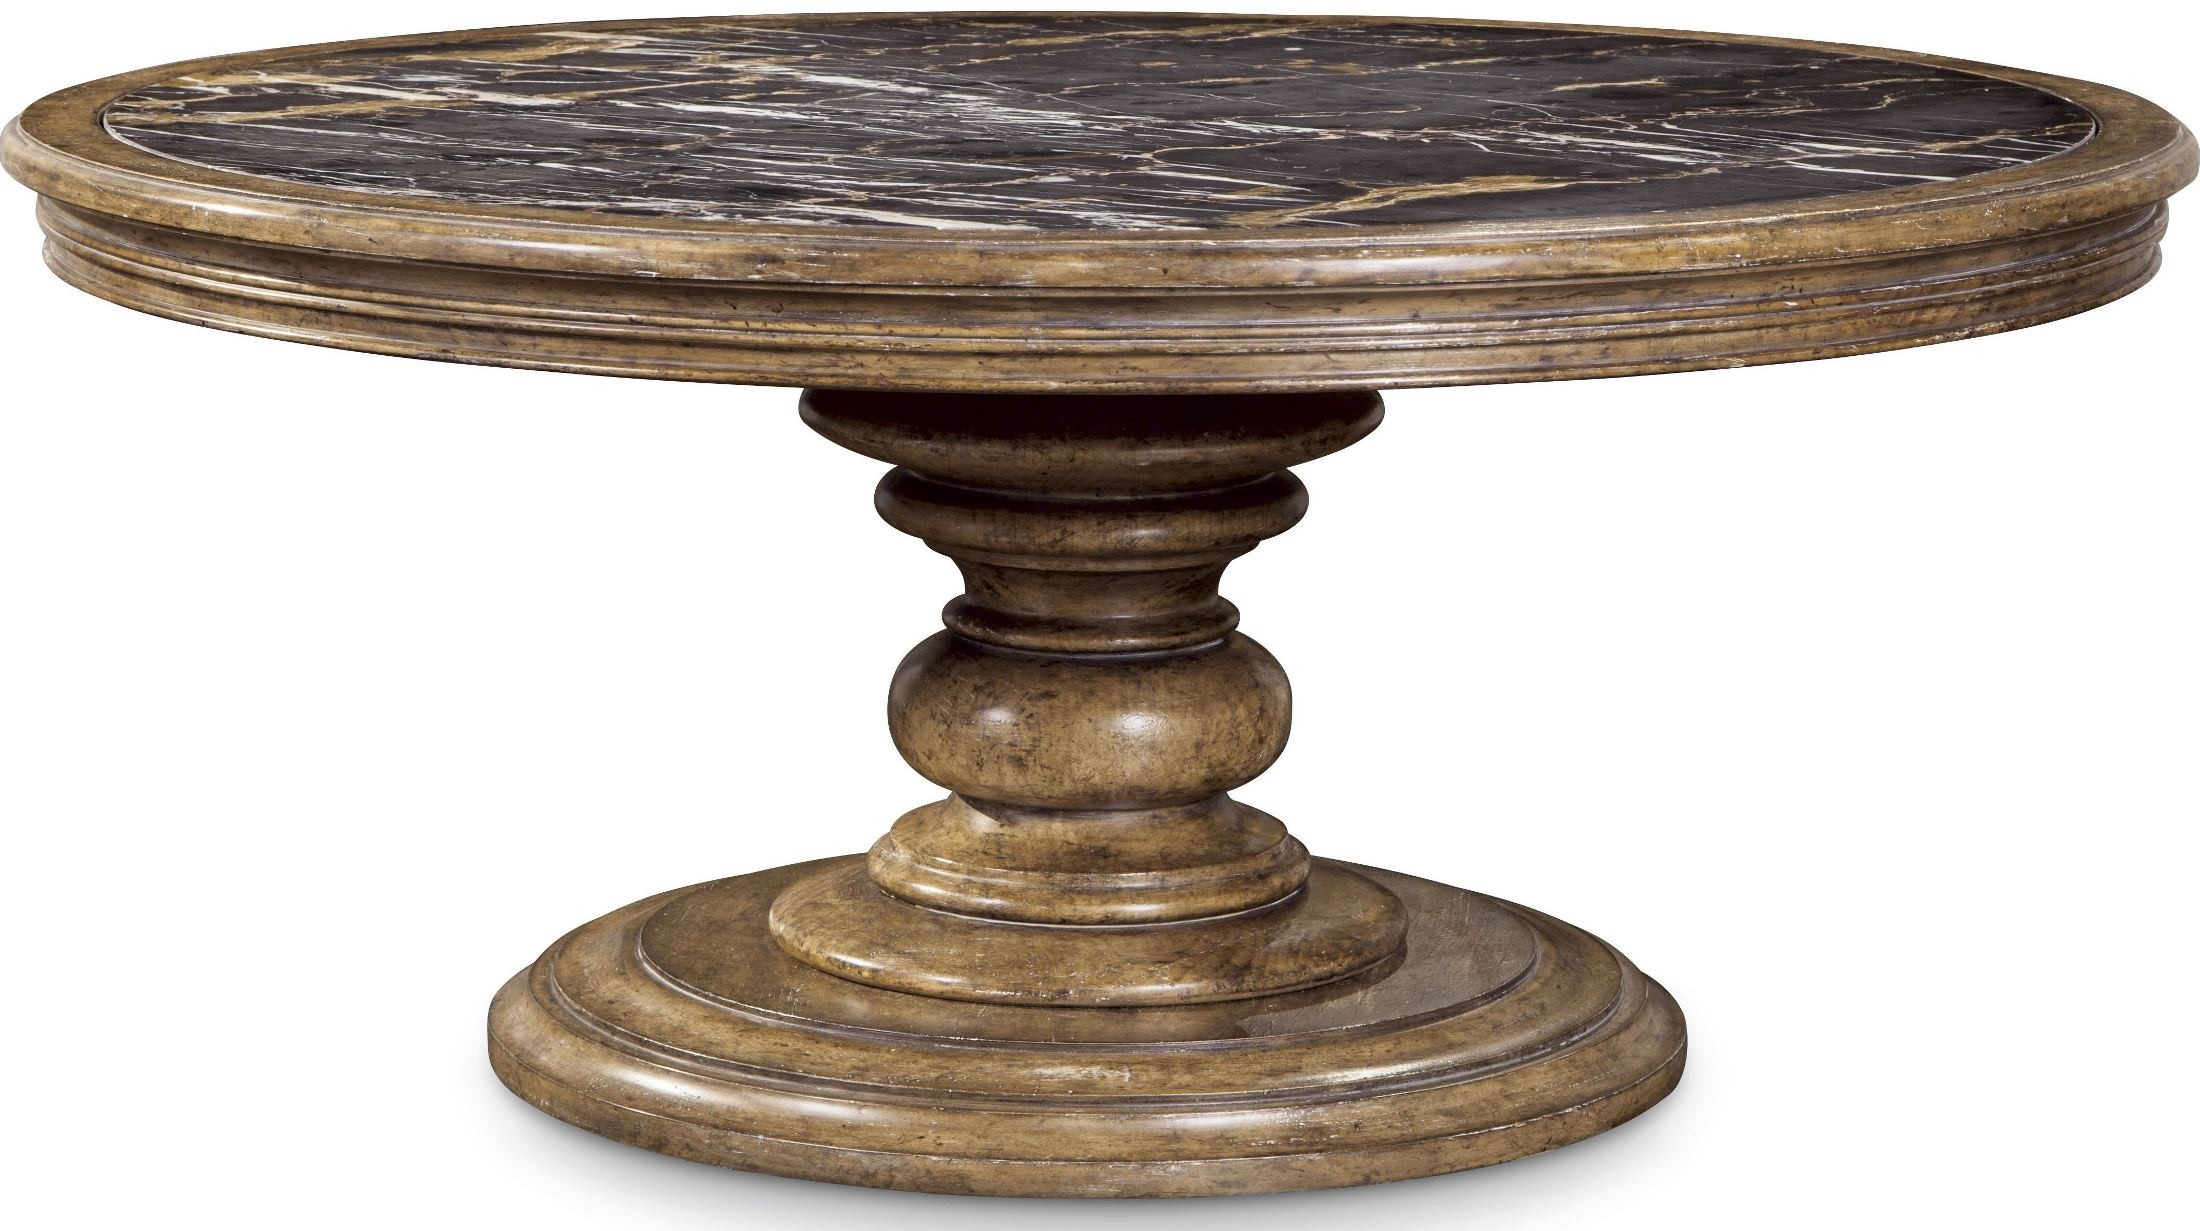 Pavilion Rustic Pine Round Cocktail Table From Art 229301 2608 Coleman Furniture